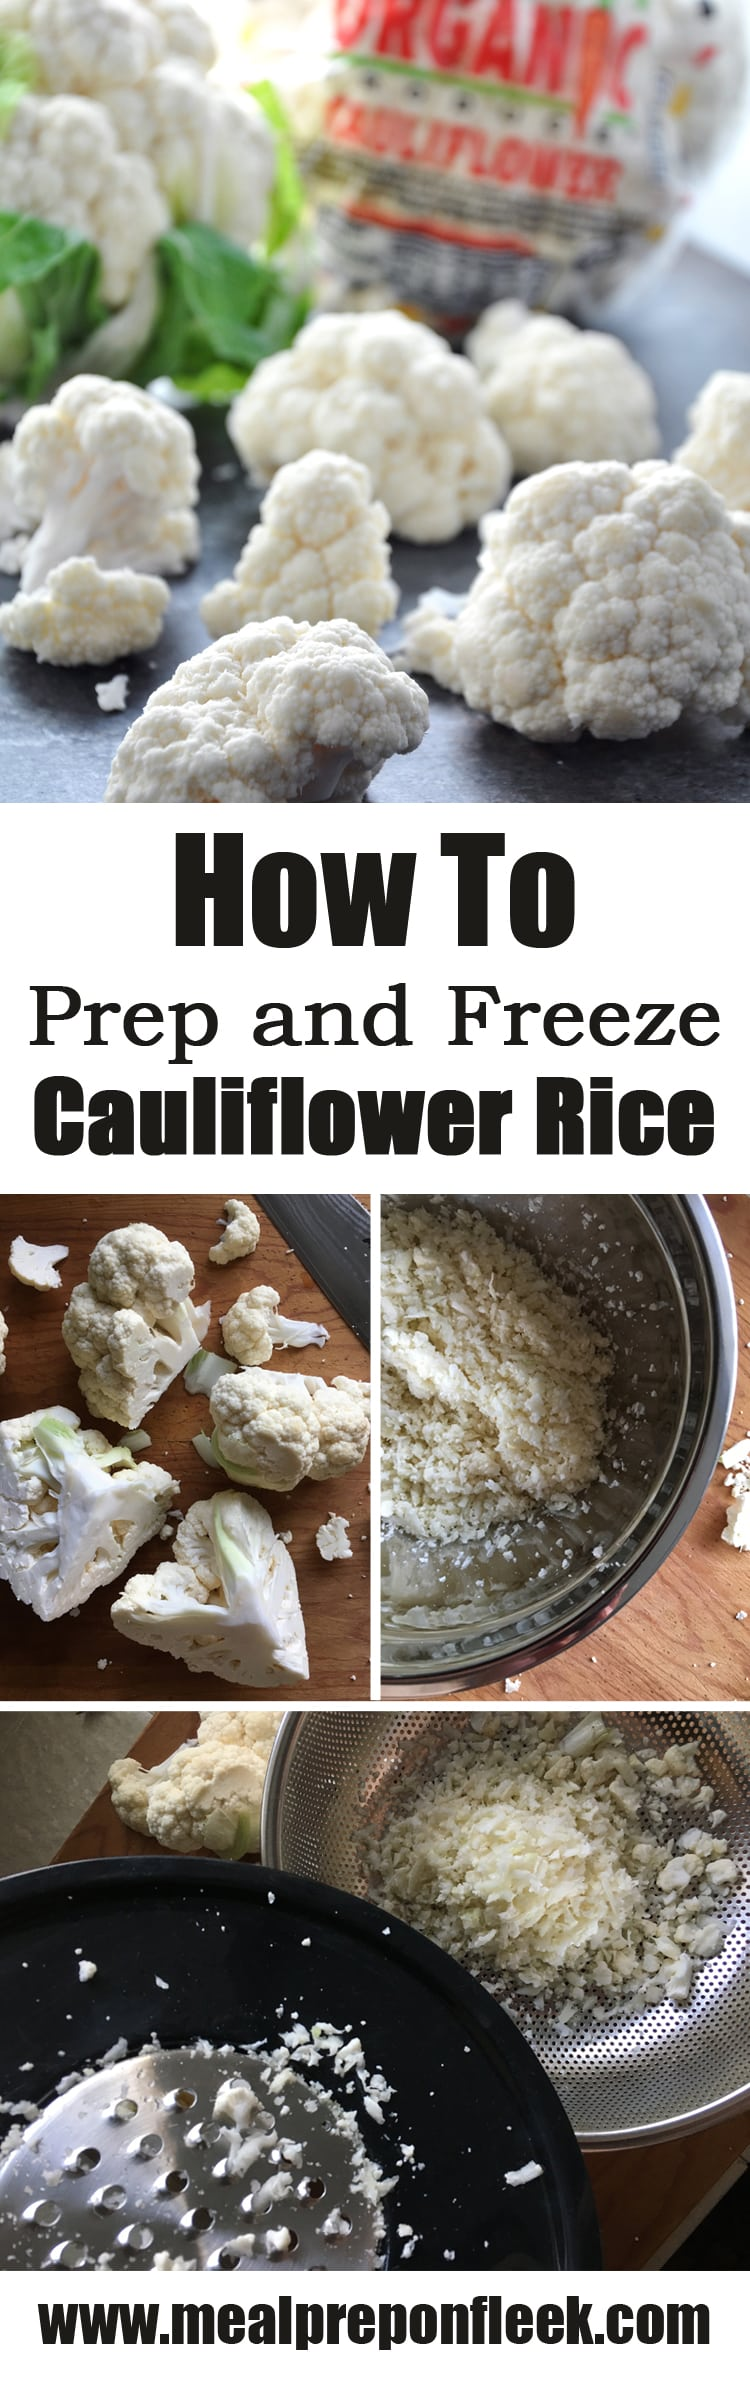 how to prep and freeze cauliflower